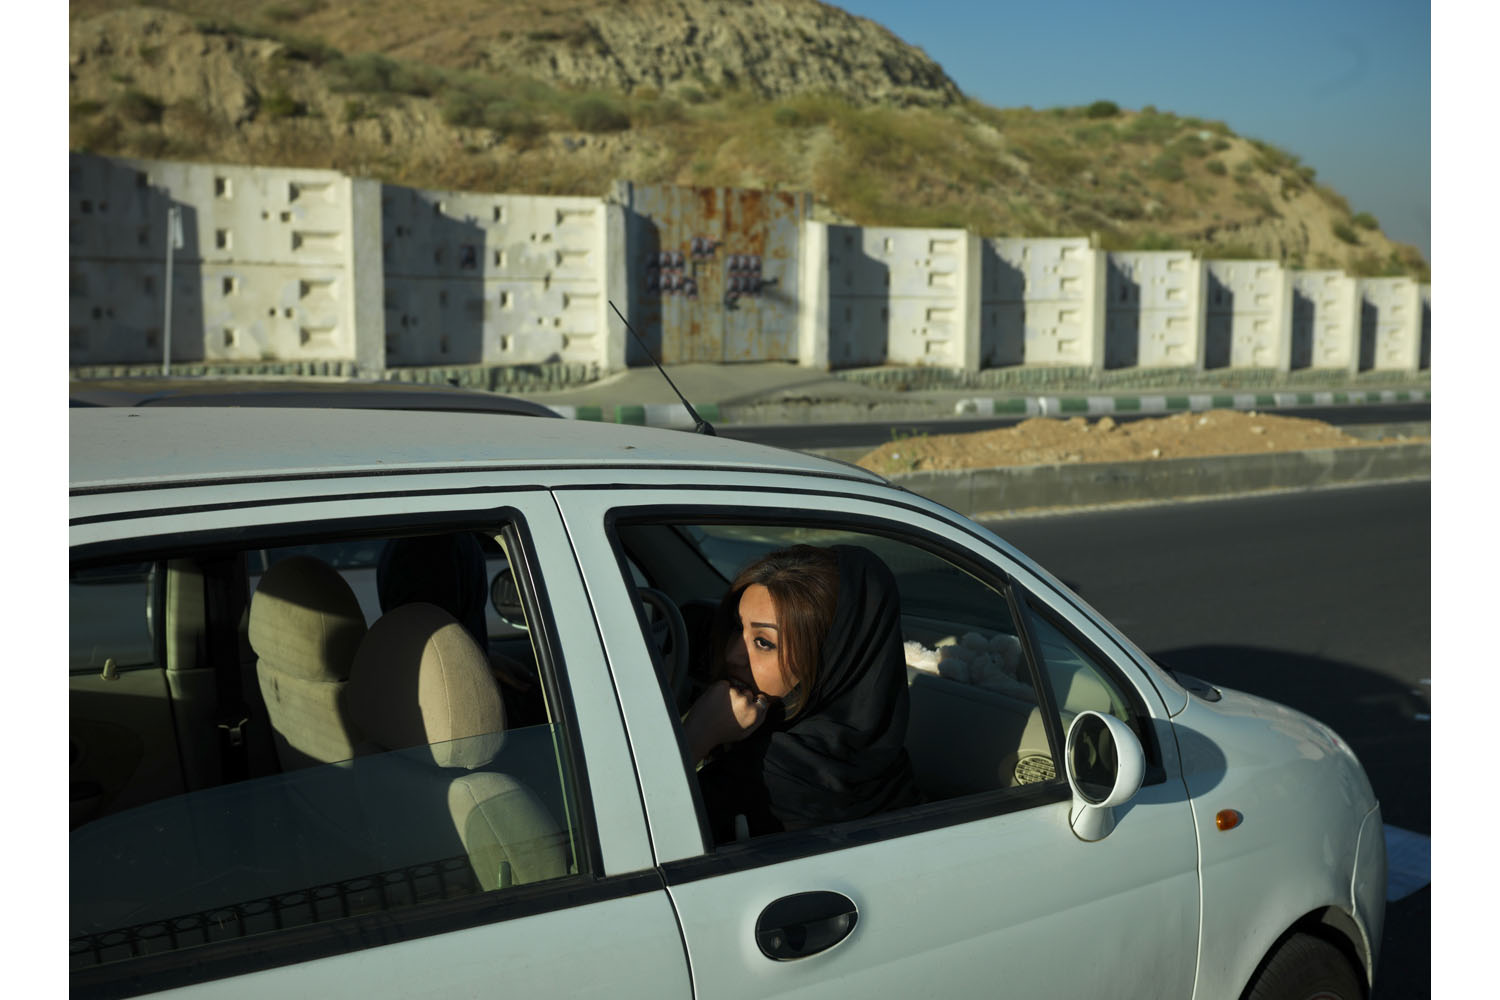 A young woman in a car in the western part of Tehran, where mostly middle class families live.